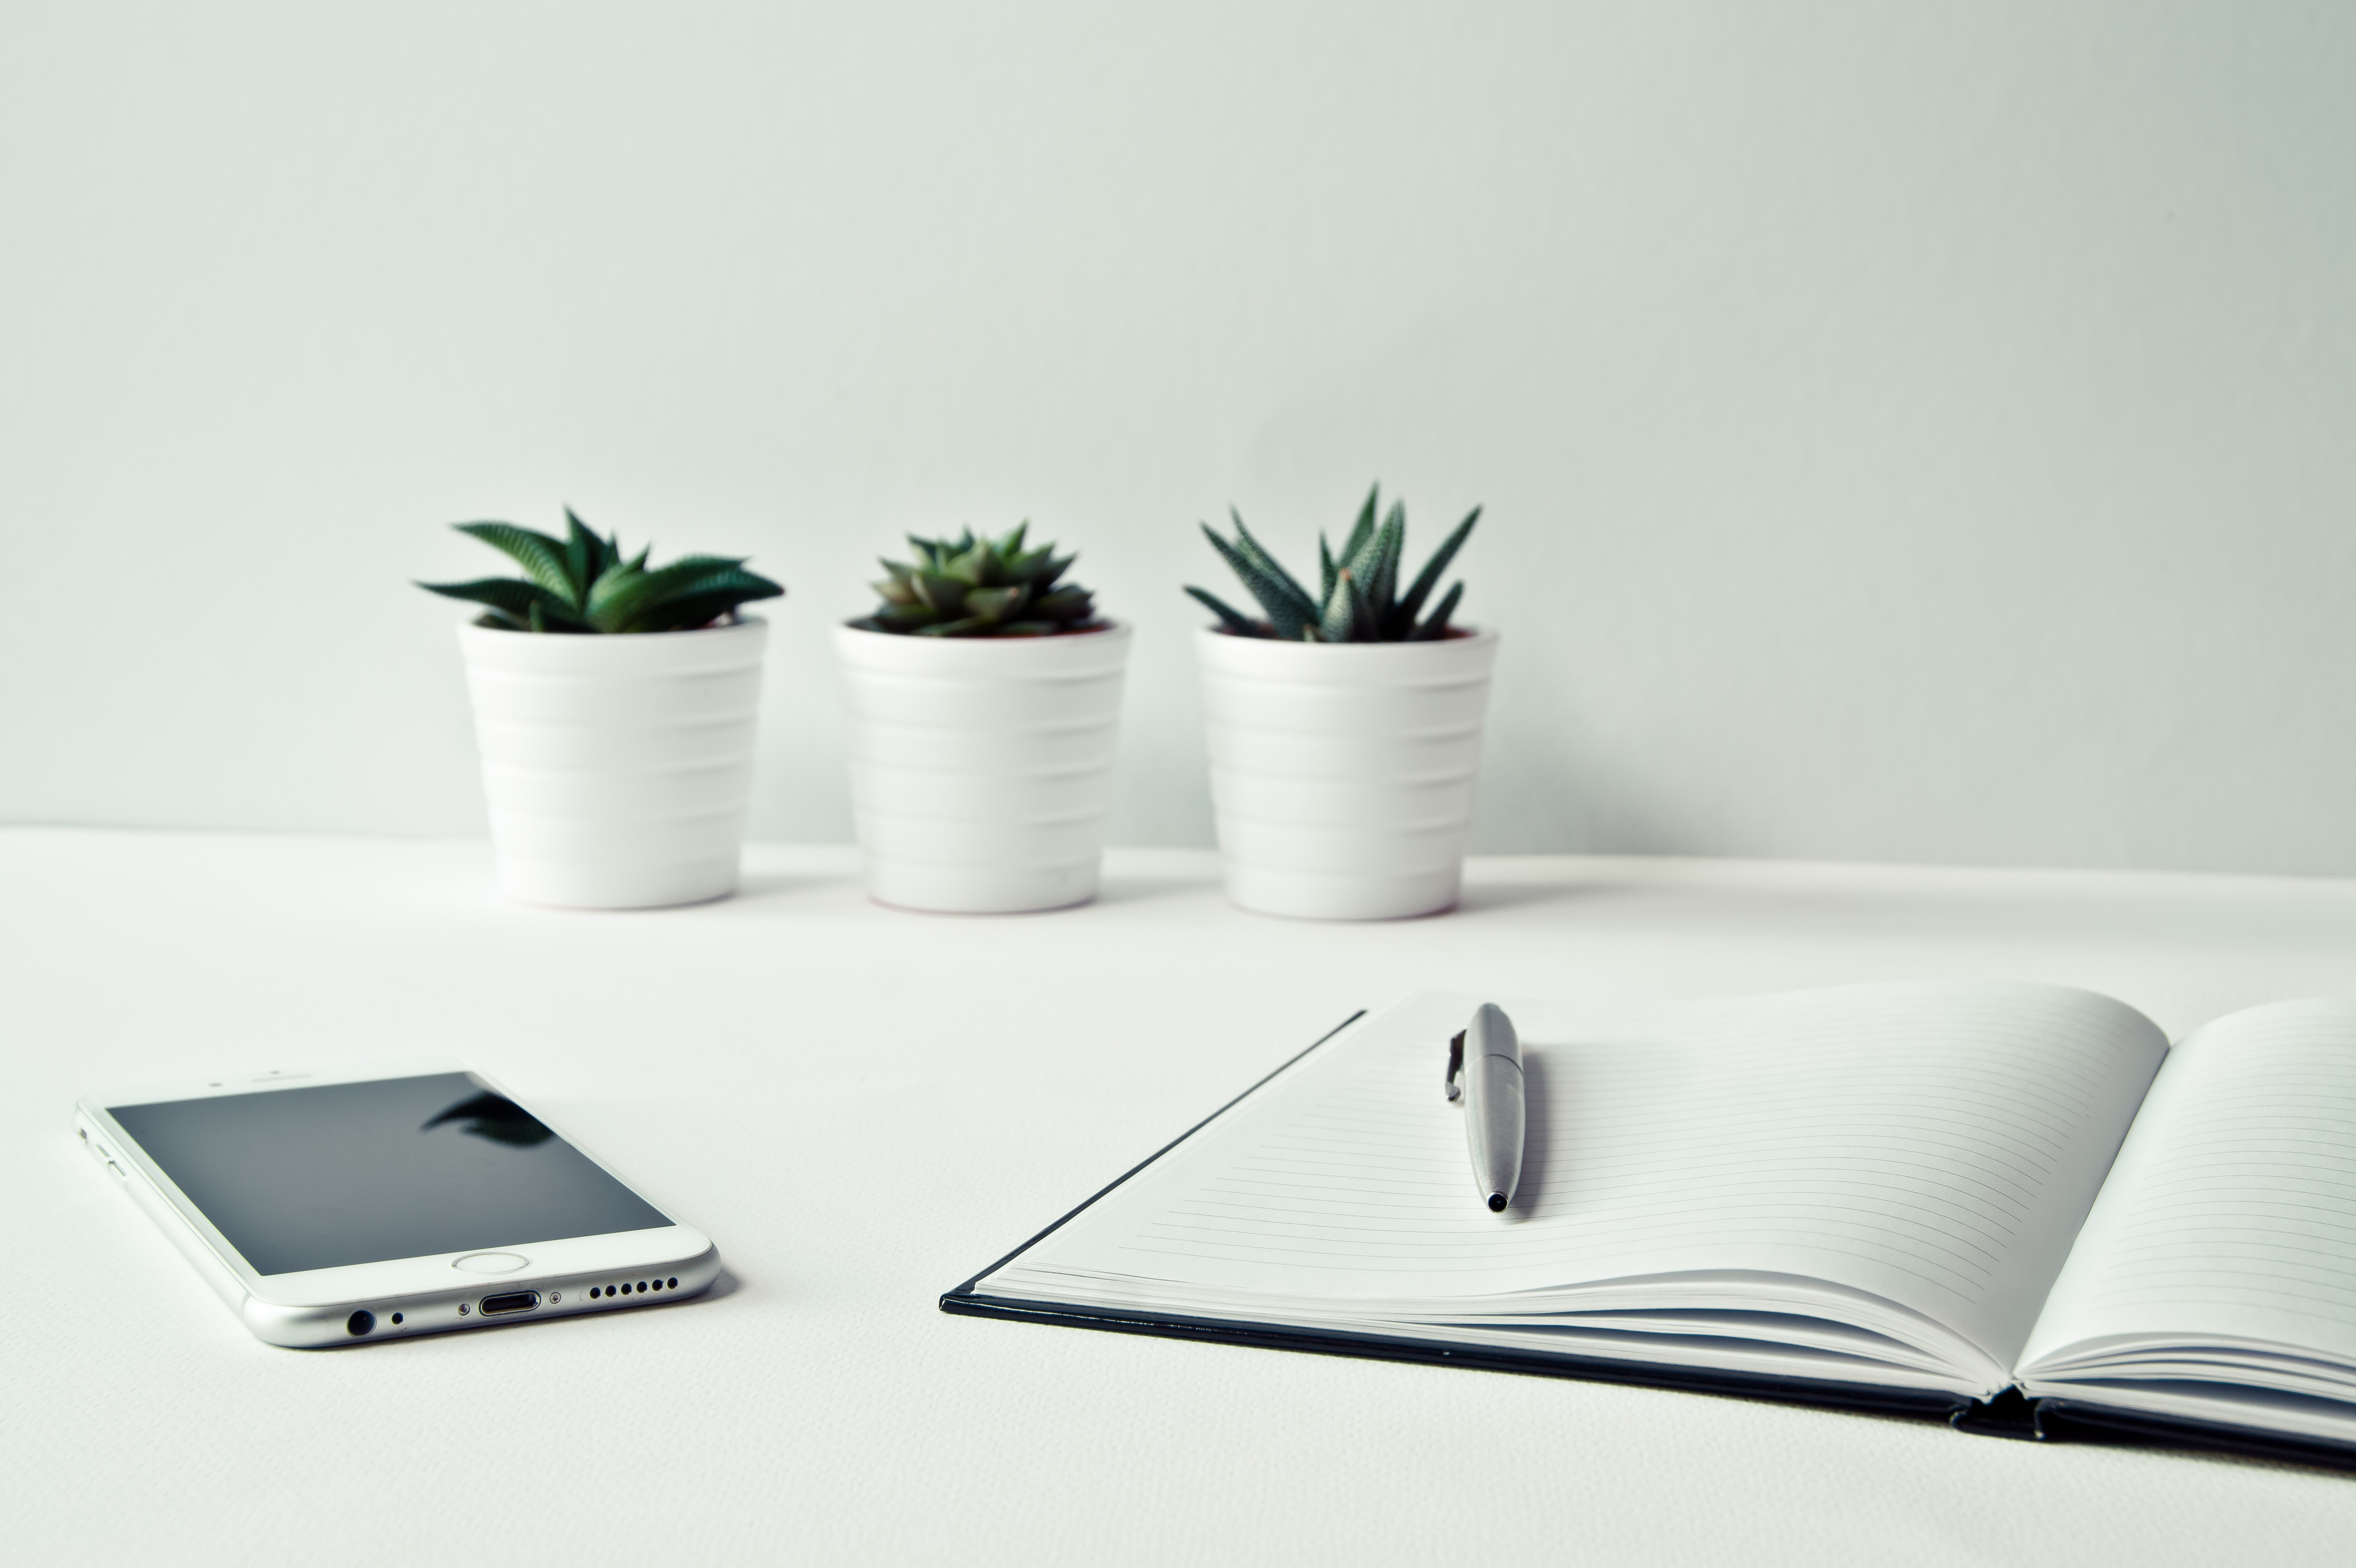 Three Succulents, Cell Phone, Notepad with Pen